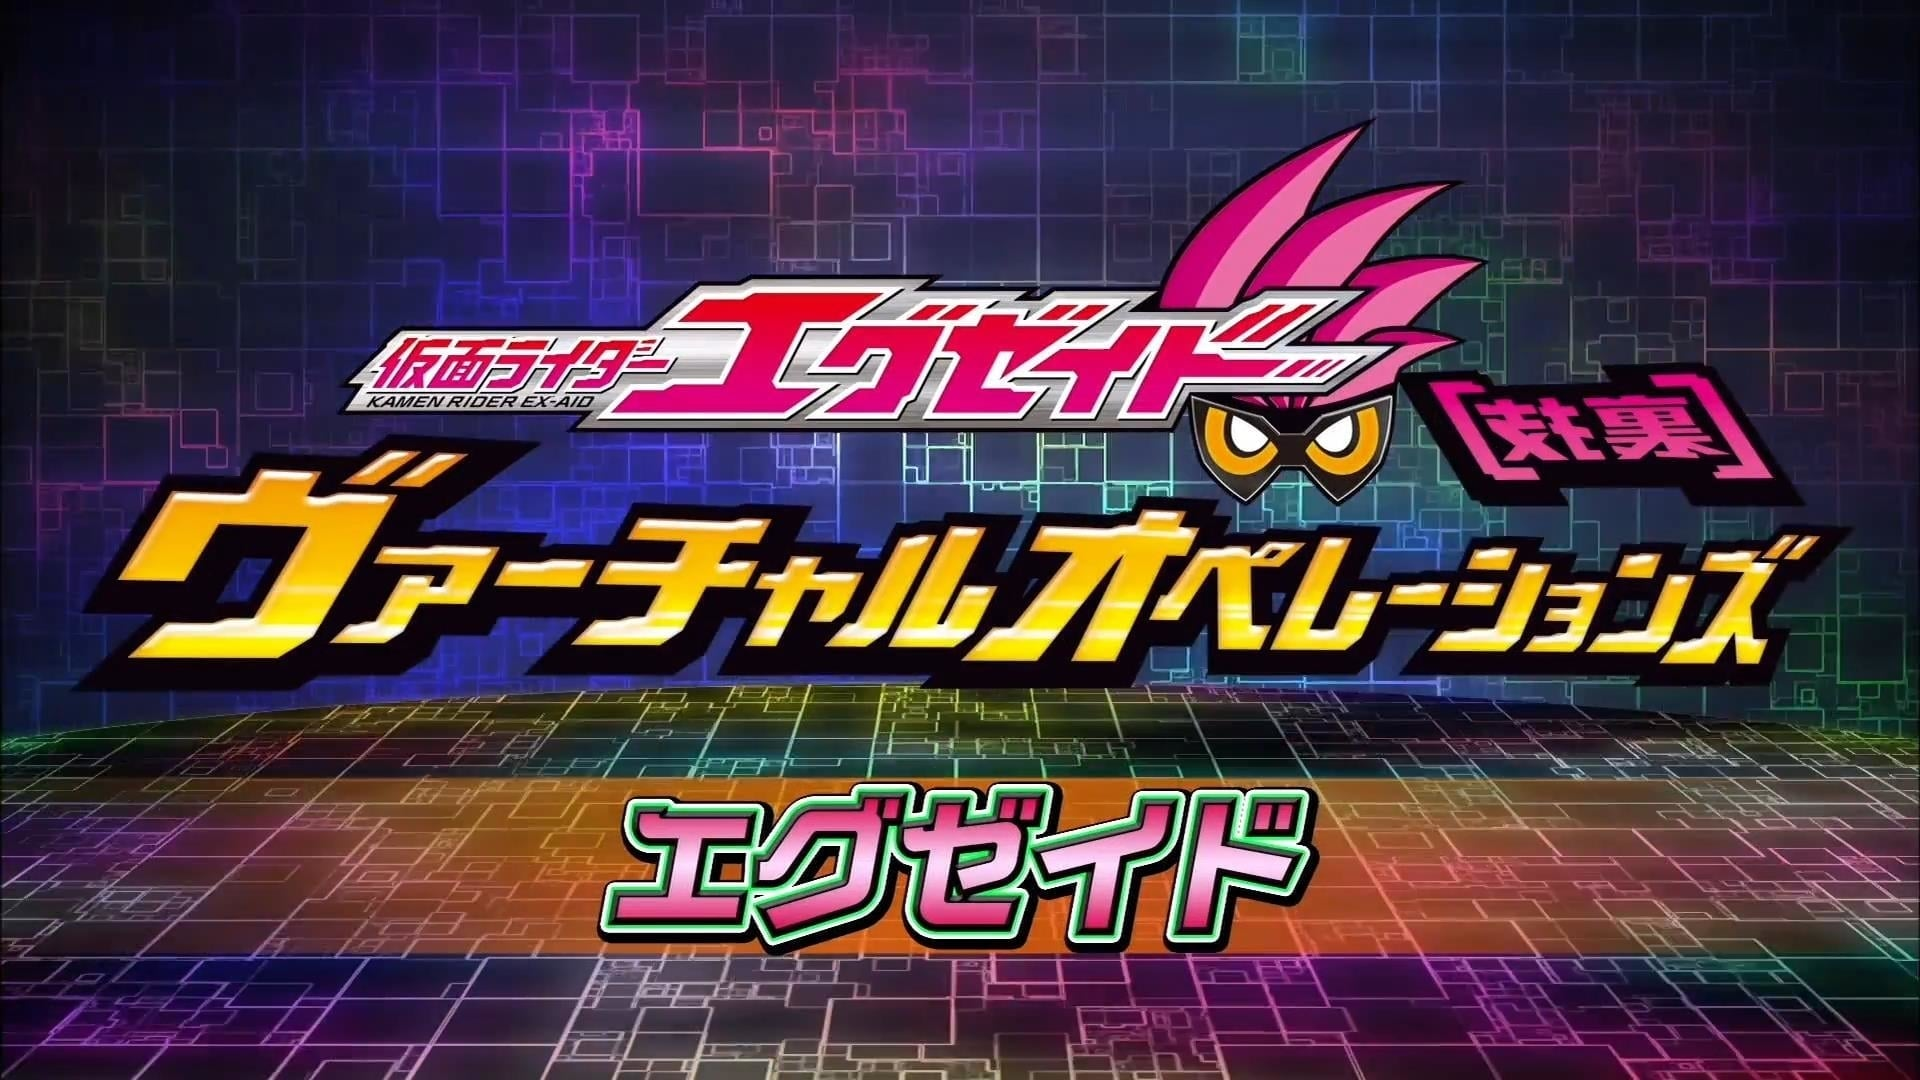 Kamen Rider Season 0 :Episode 1  Kamen Rider Ex-Aid [Tricks] - Virtual Operations - Ex-Aid Chapter